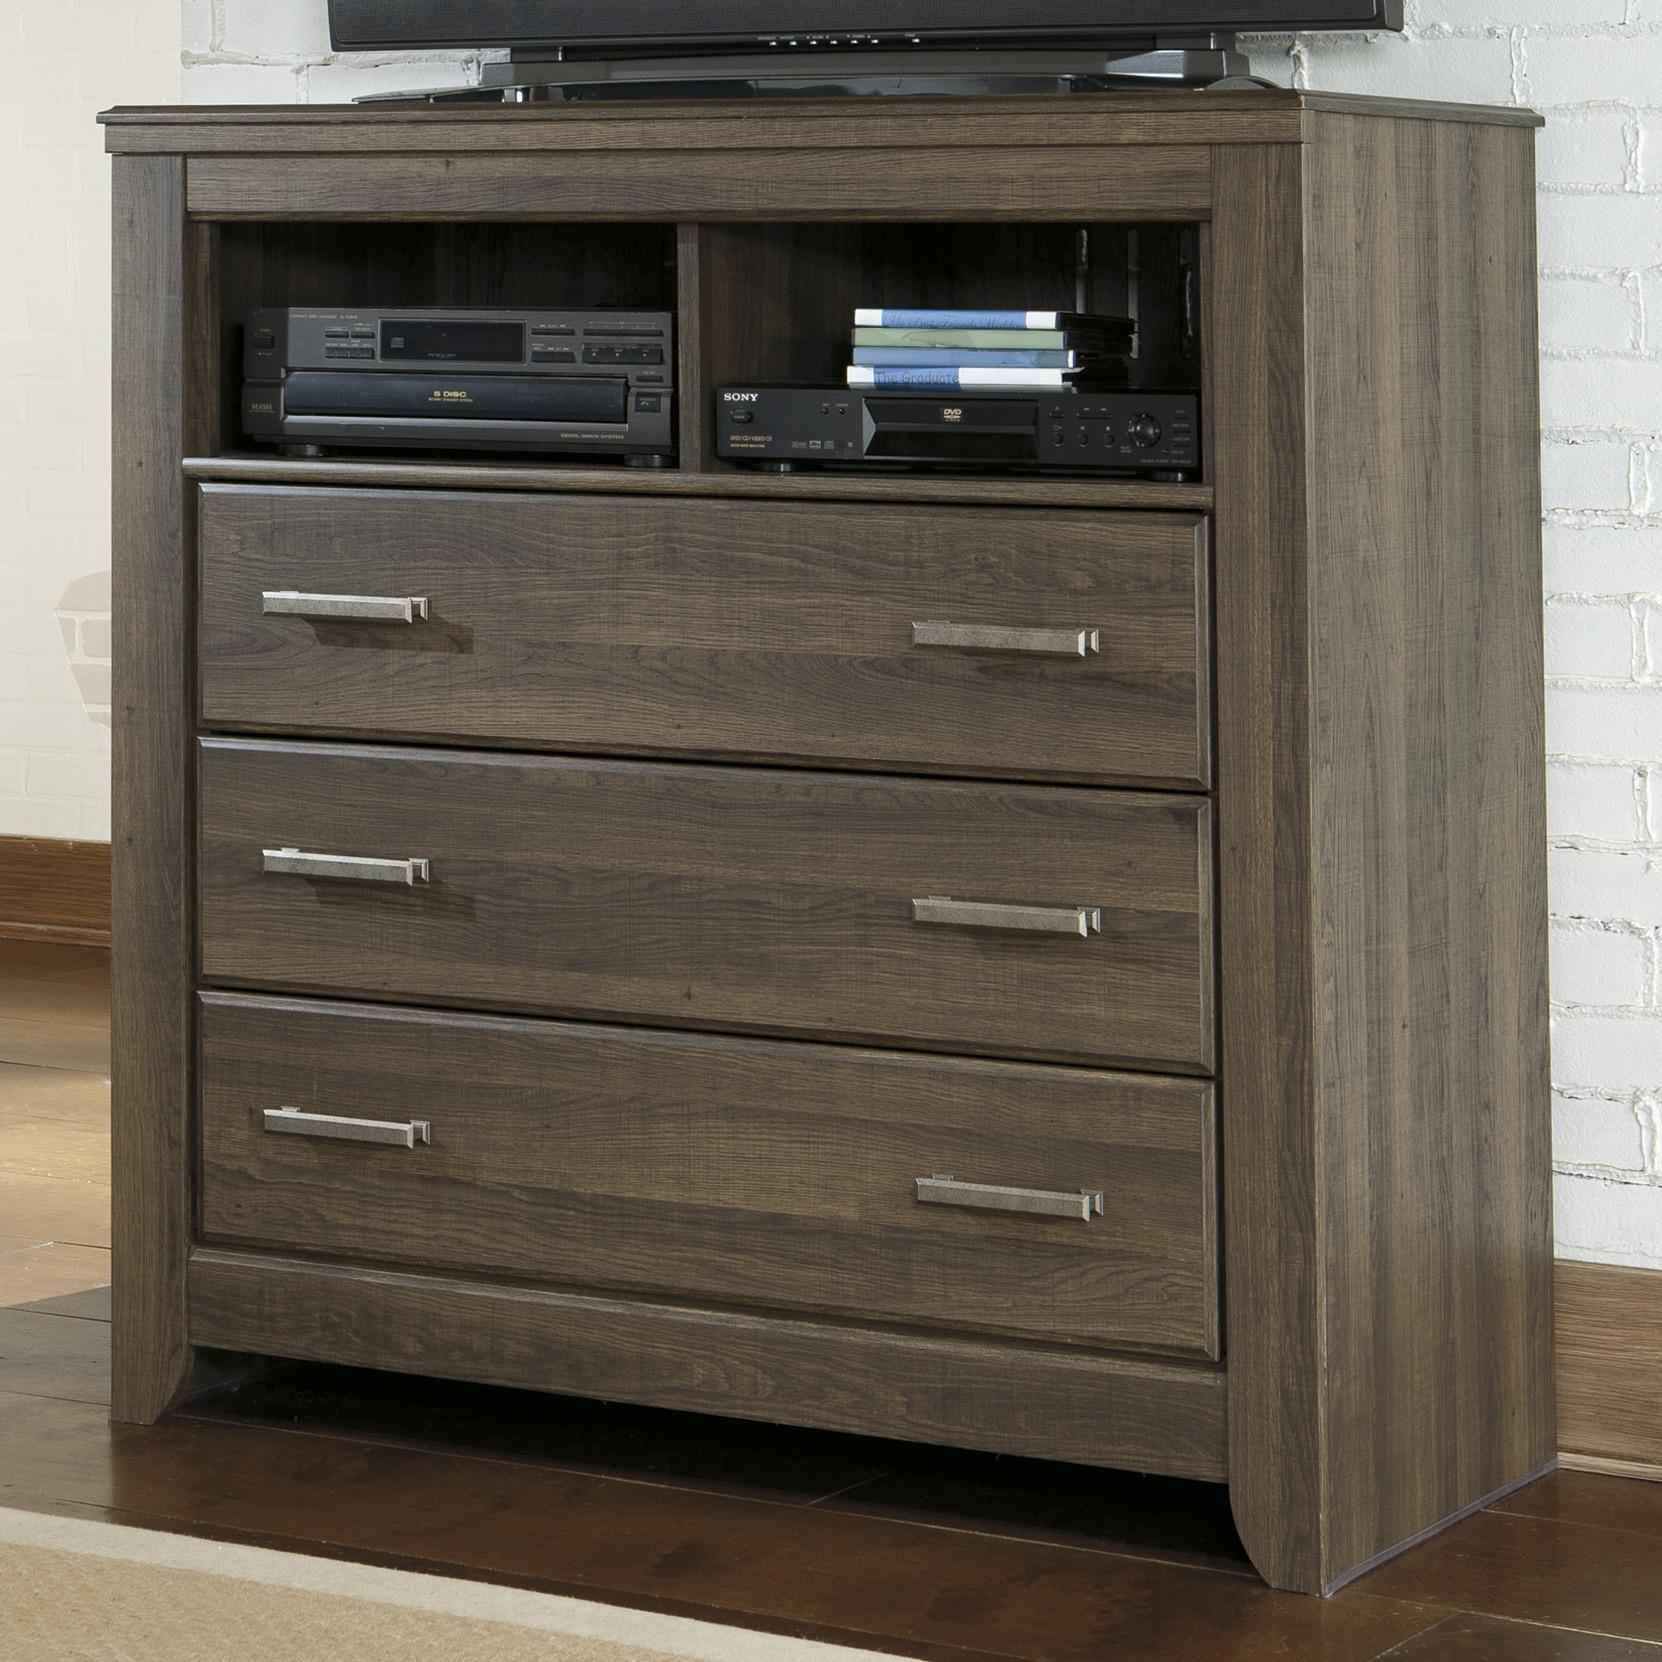 Signature Design By Ashley Juararo 3 Drawer Media Chest Furniture And Appliancemart Media Chests